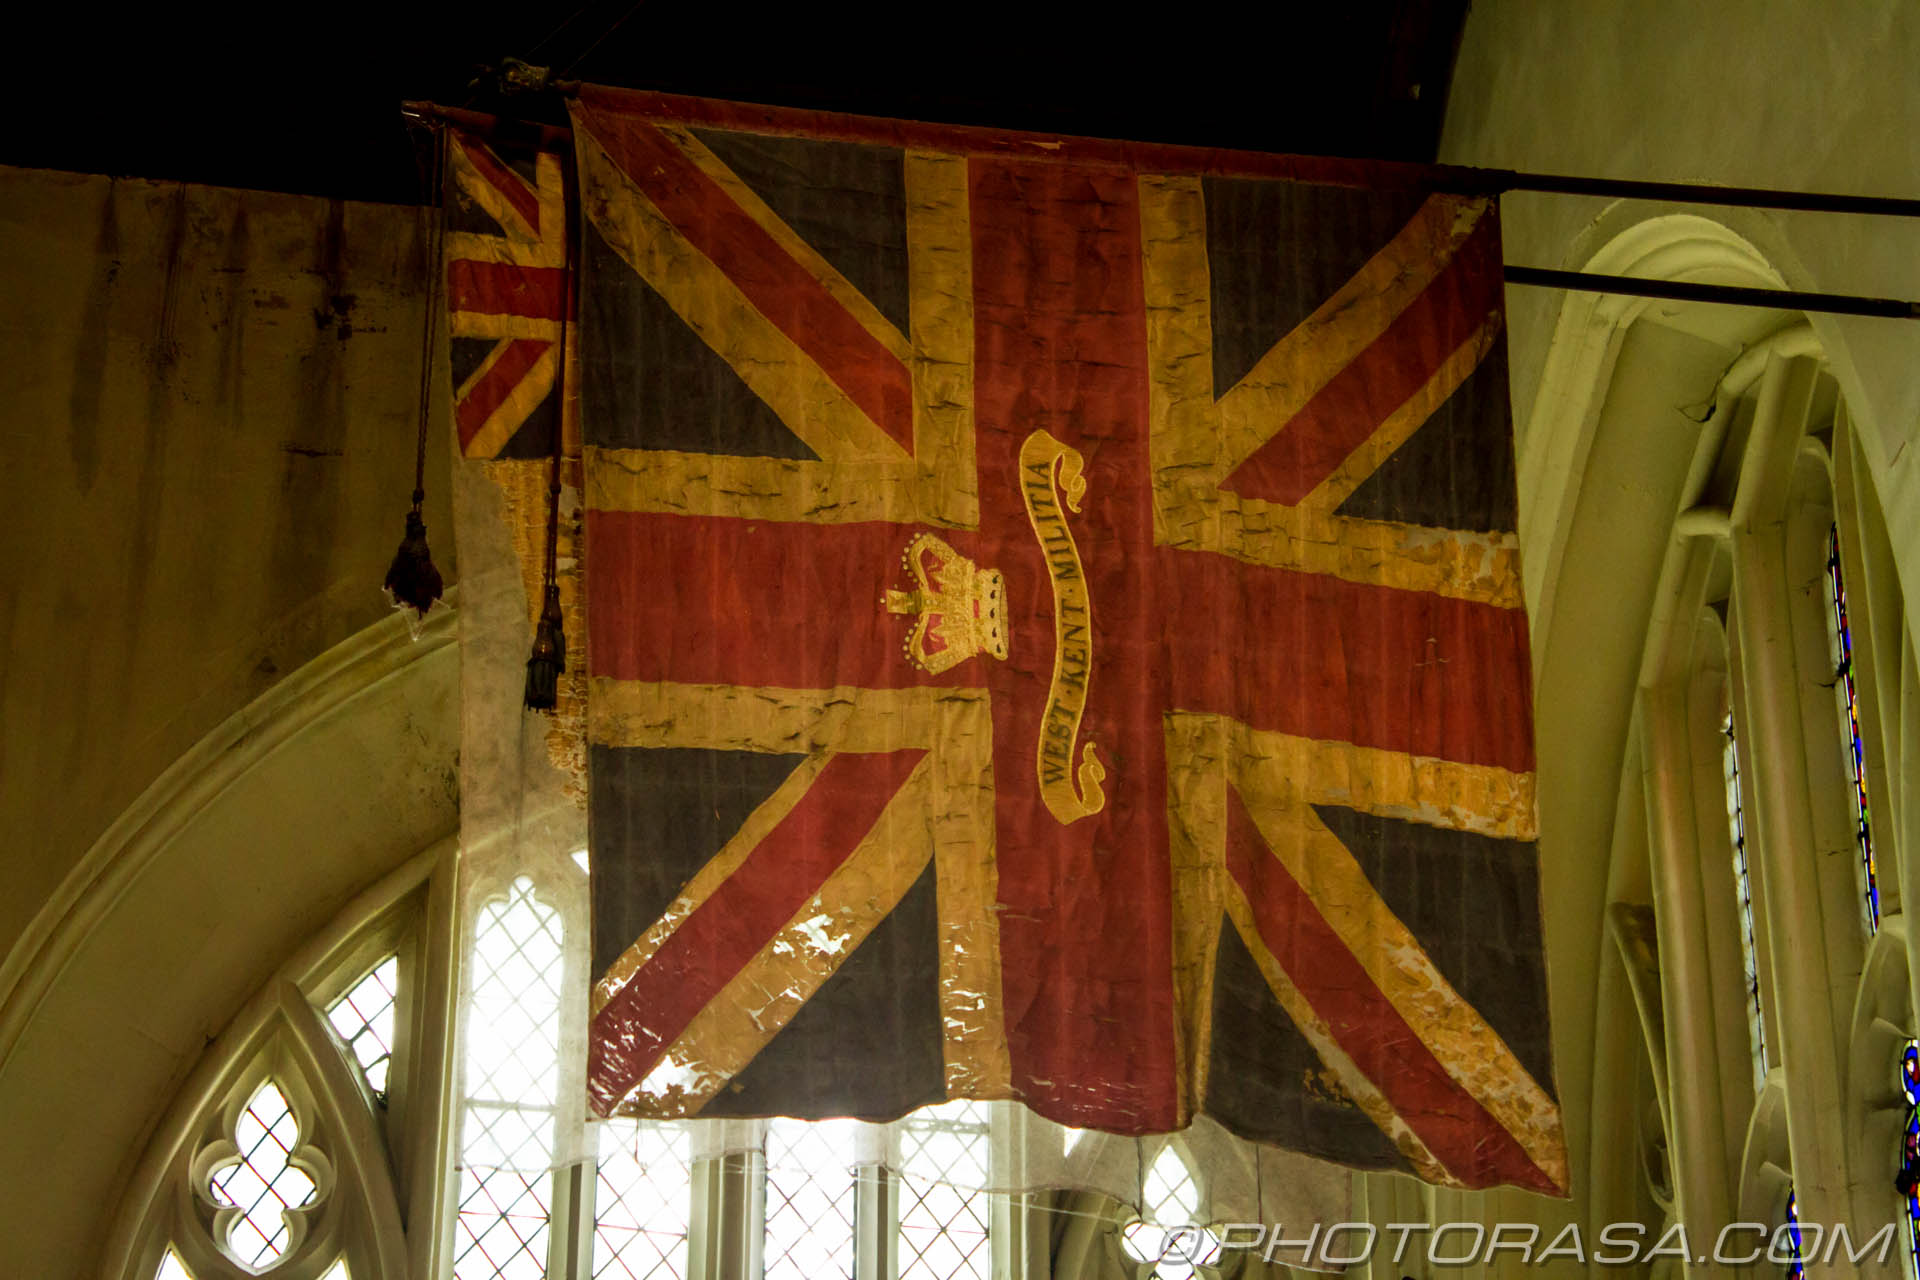 http://photorasa.com/inside-all-saints-church-in-maidstone/old-military-union-flag/